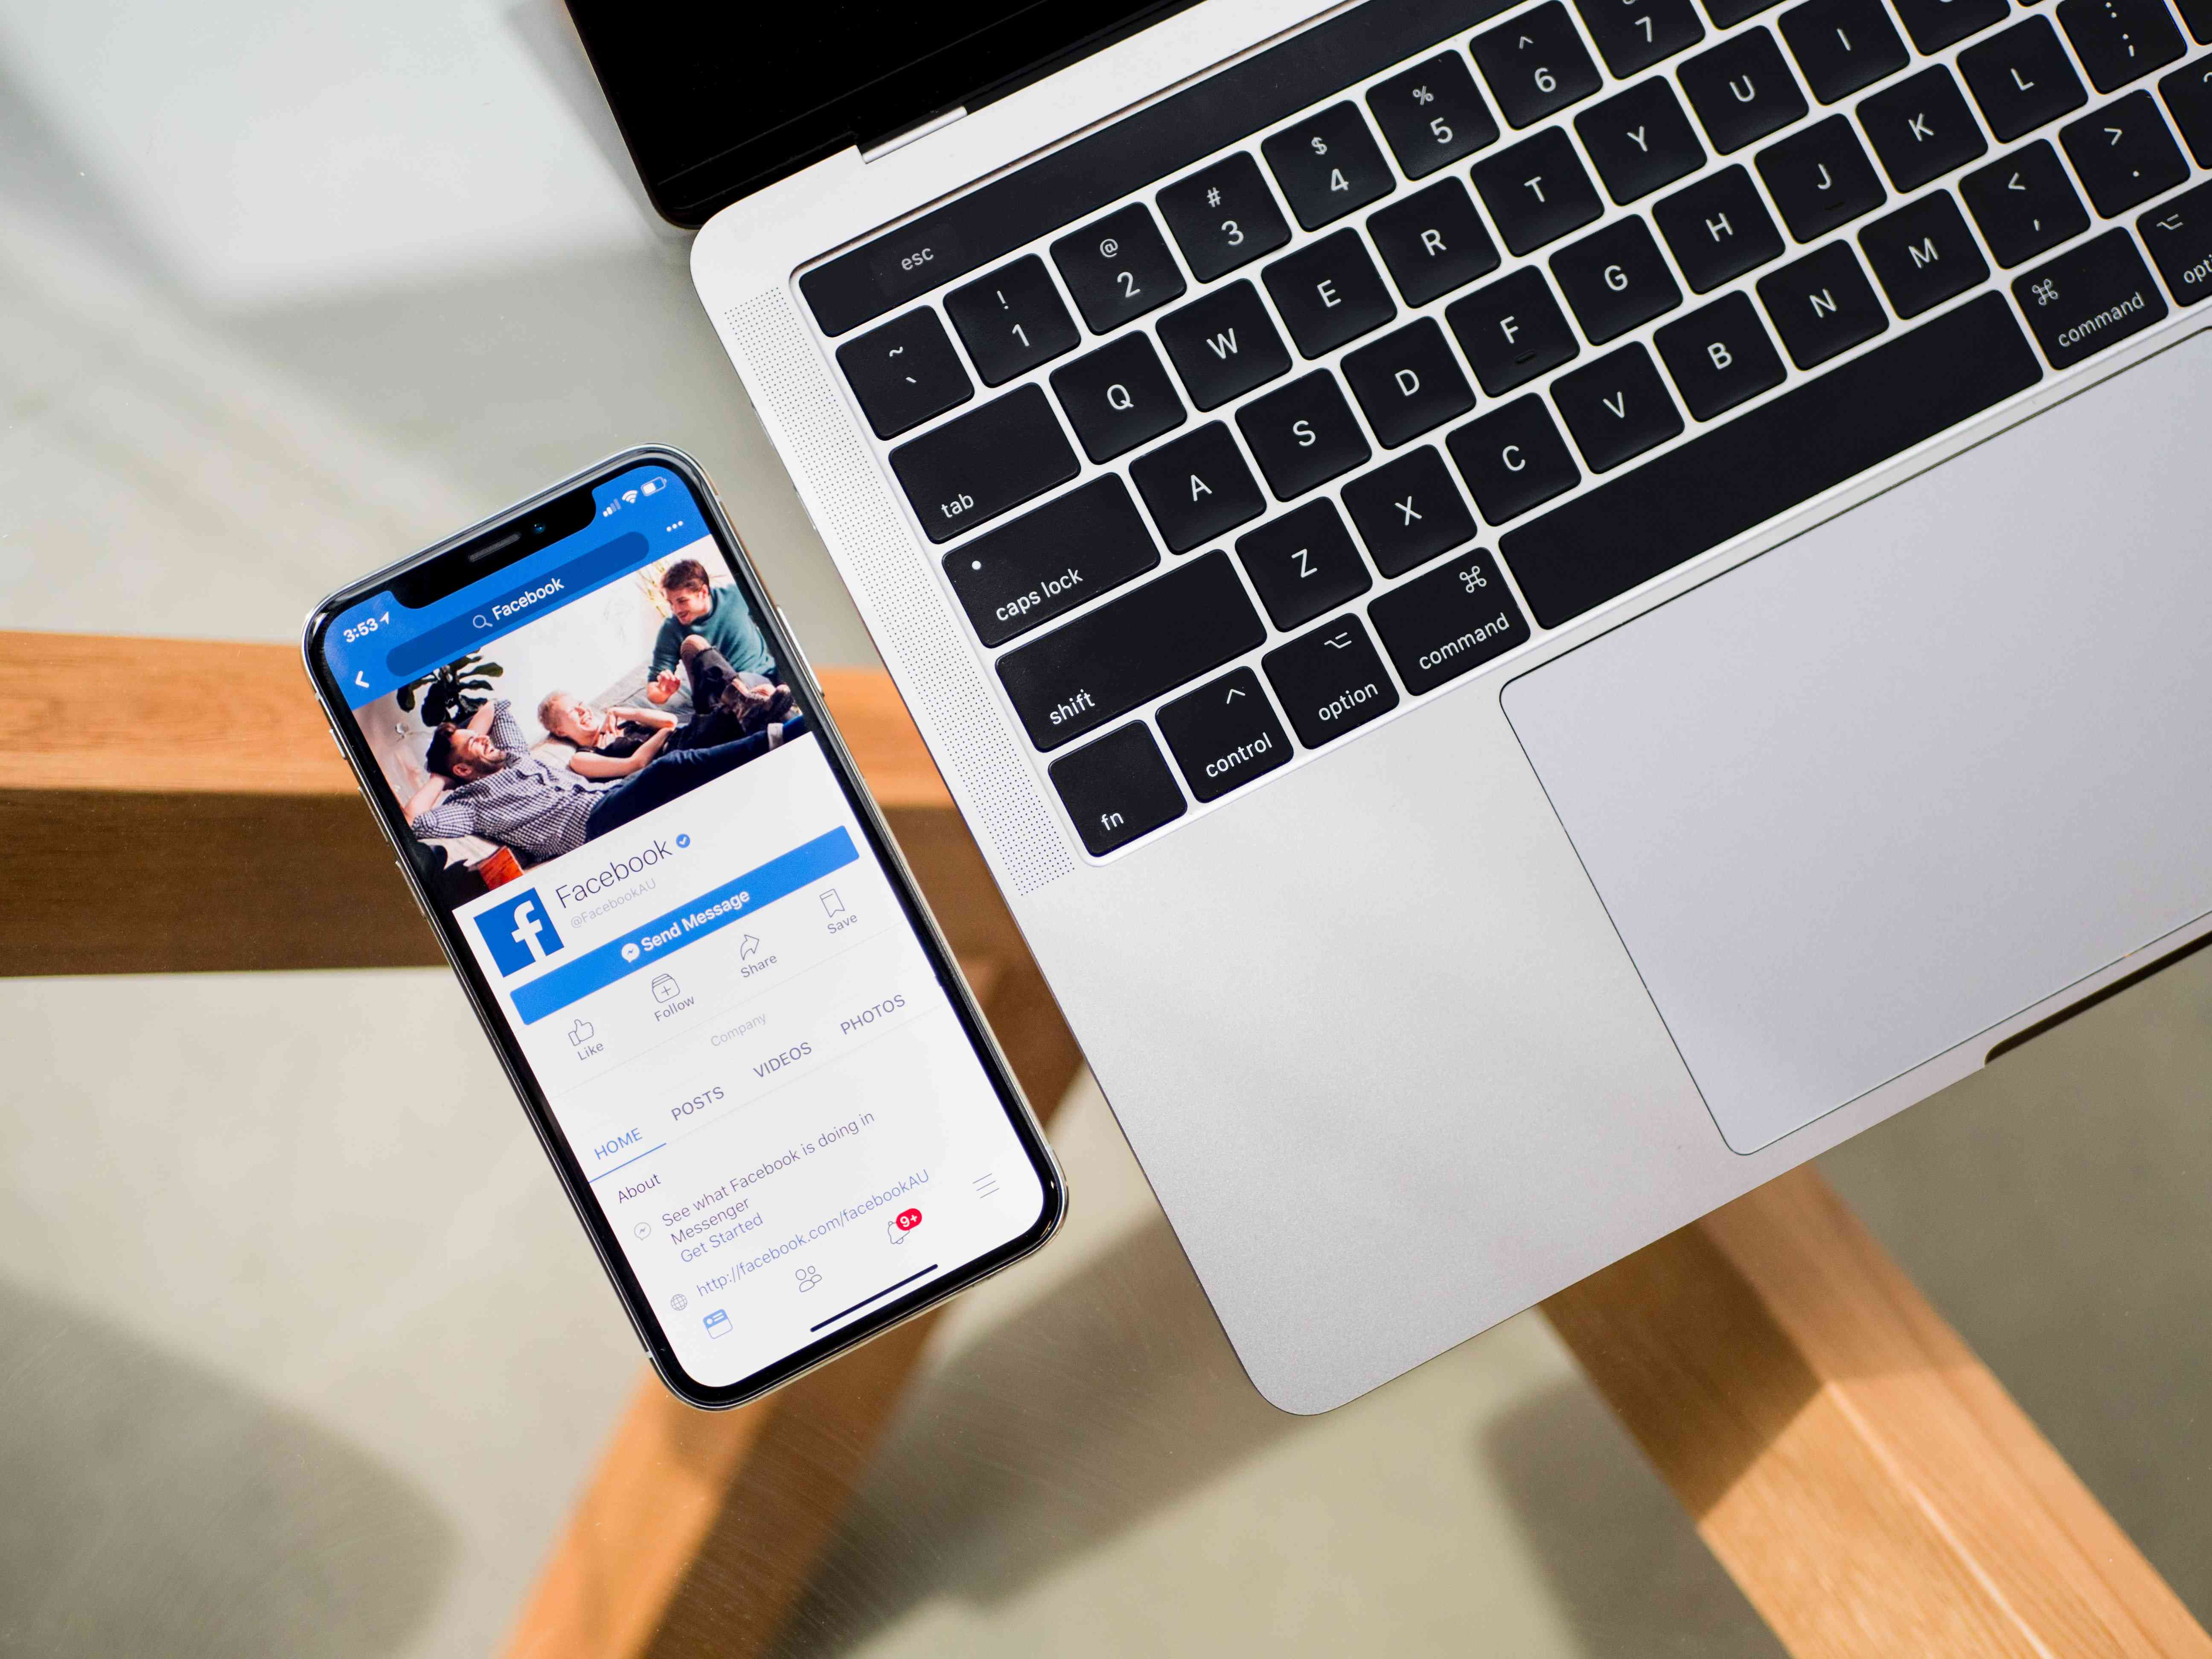 An iPhone X beside a laptop showing information about the Facebook app on the phone screen.